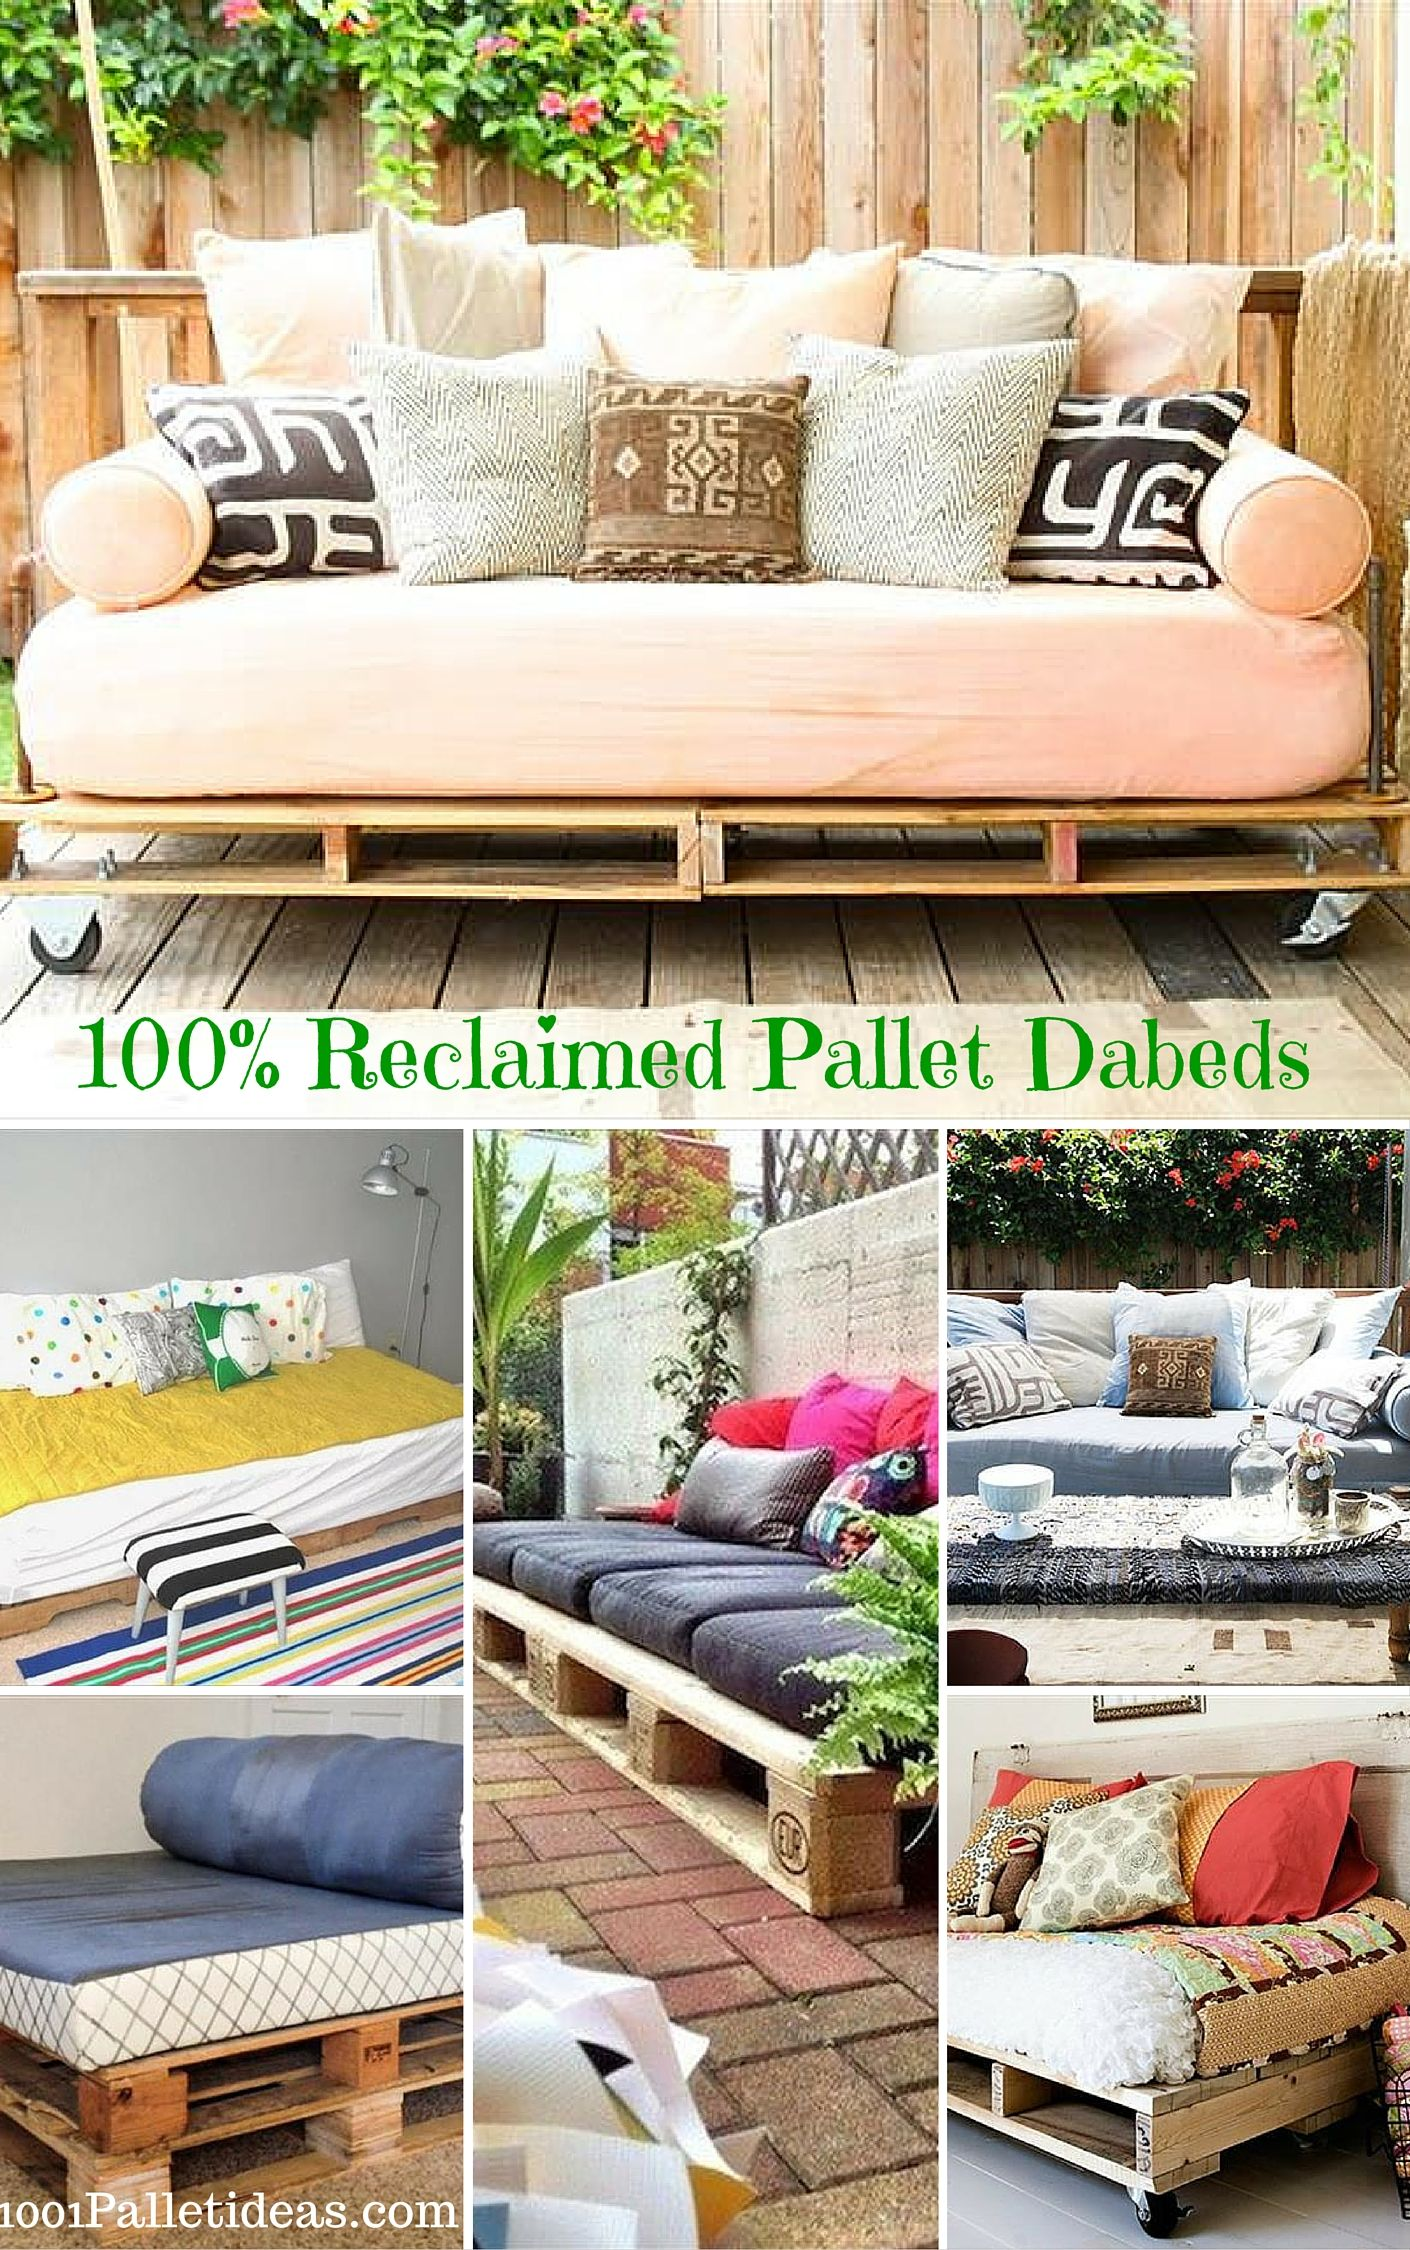 12 Diy Pallet Daybed Ideas 1001 Pallet Ideas Pallet Daybed Pallet Furniture Daybed Pallet Diy